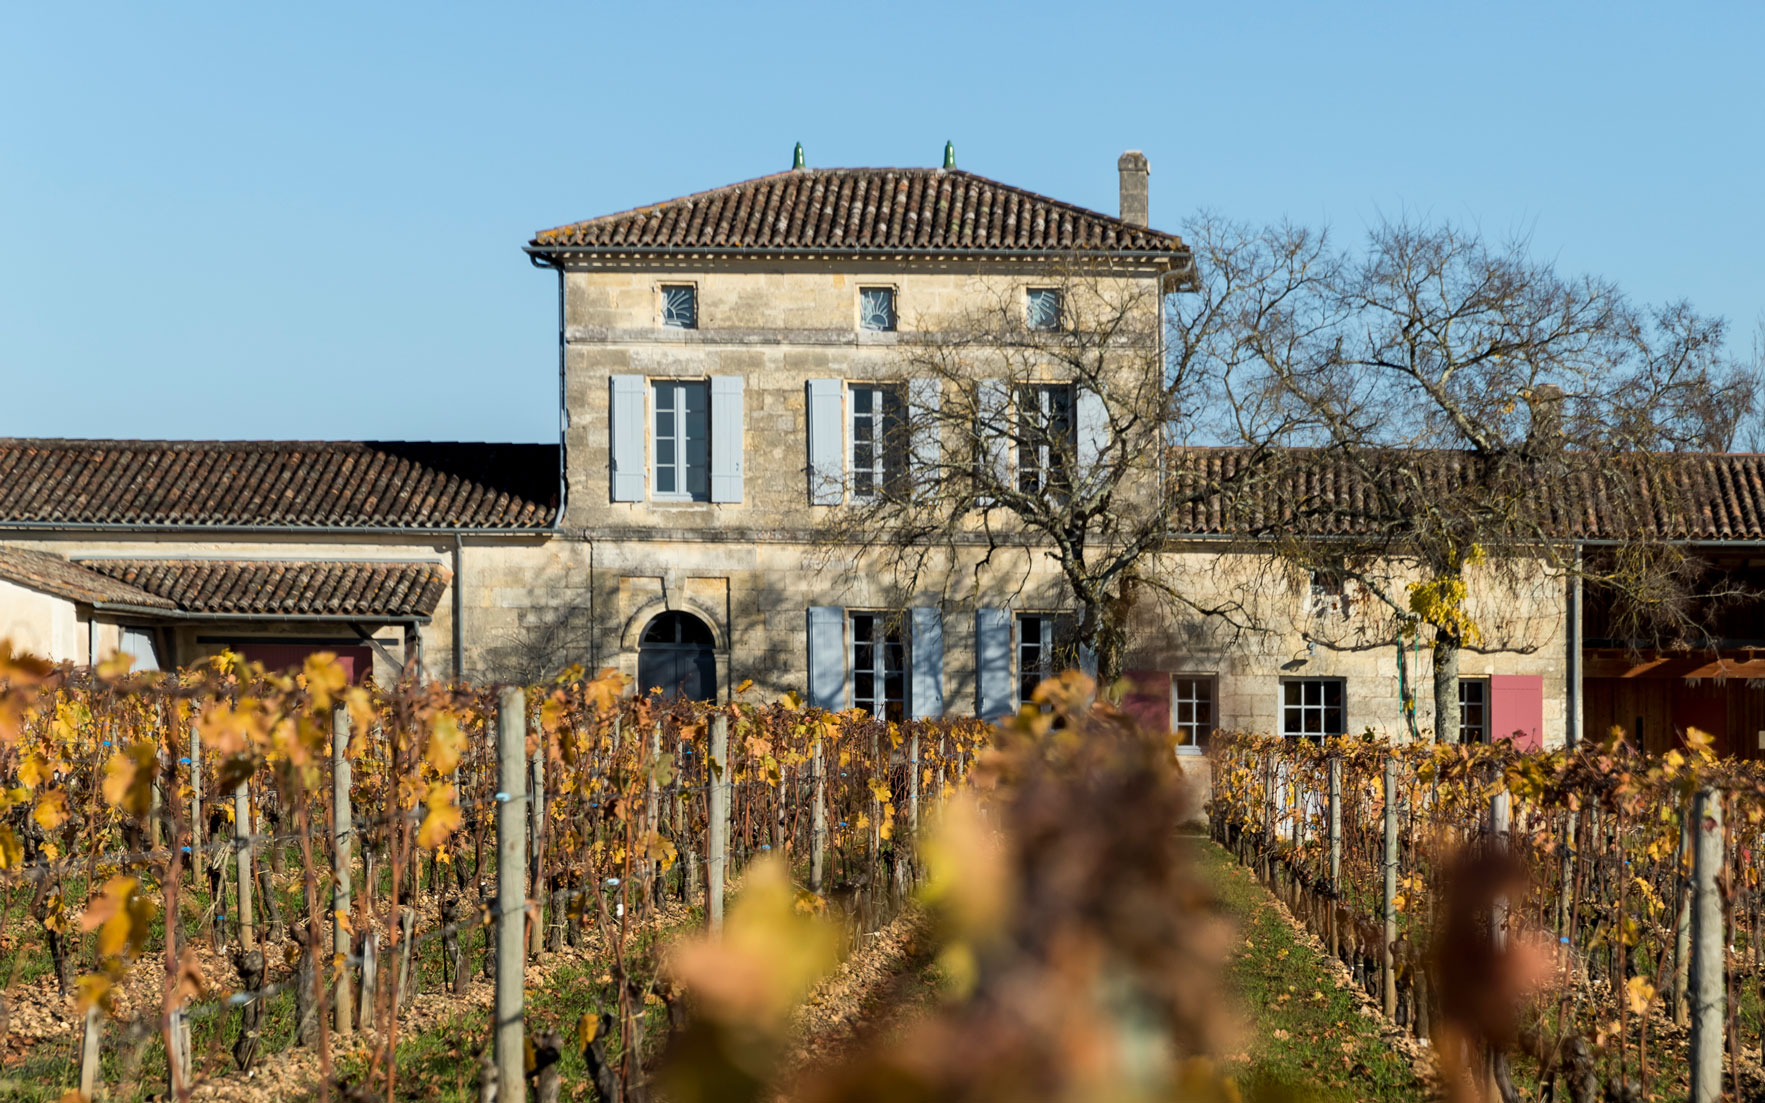 Château Lafleur, which produces only 1,000 cases per vintage from its 4.5-hectare vineyard